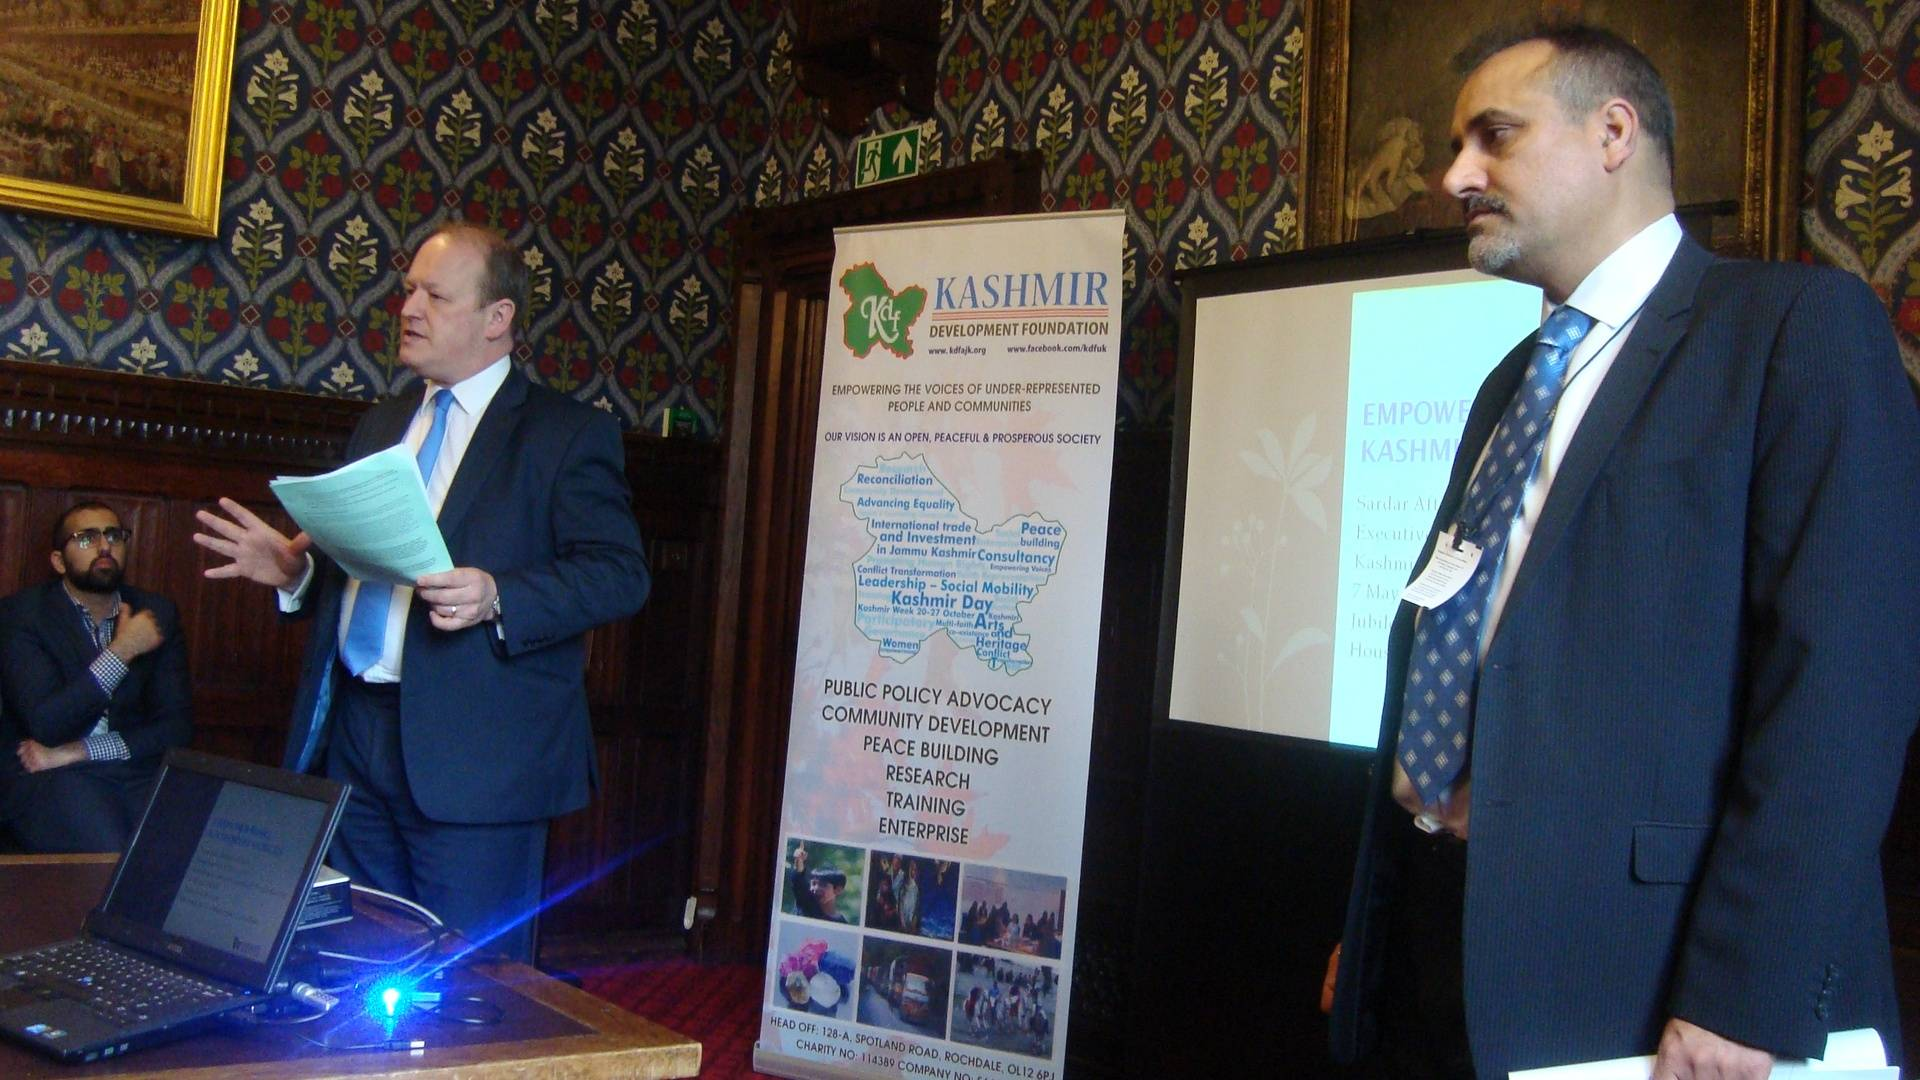 Simon Danczuk MP and Sardar Aftab Khan speaking at Parliamentary Reception